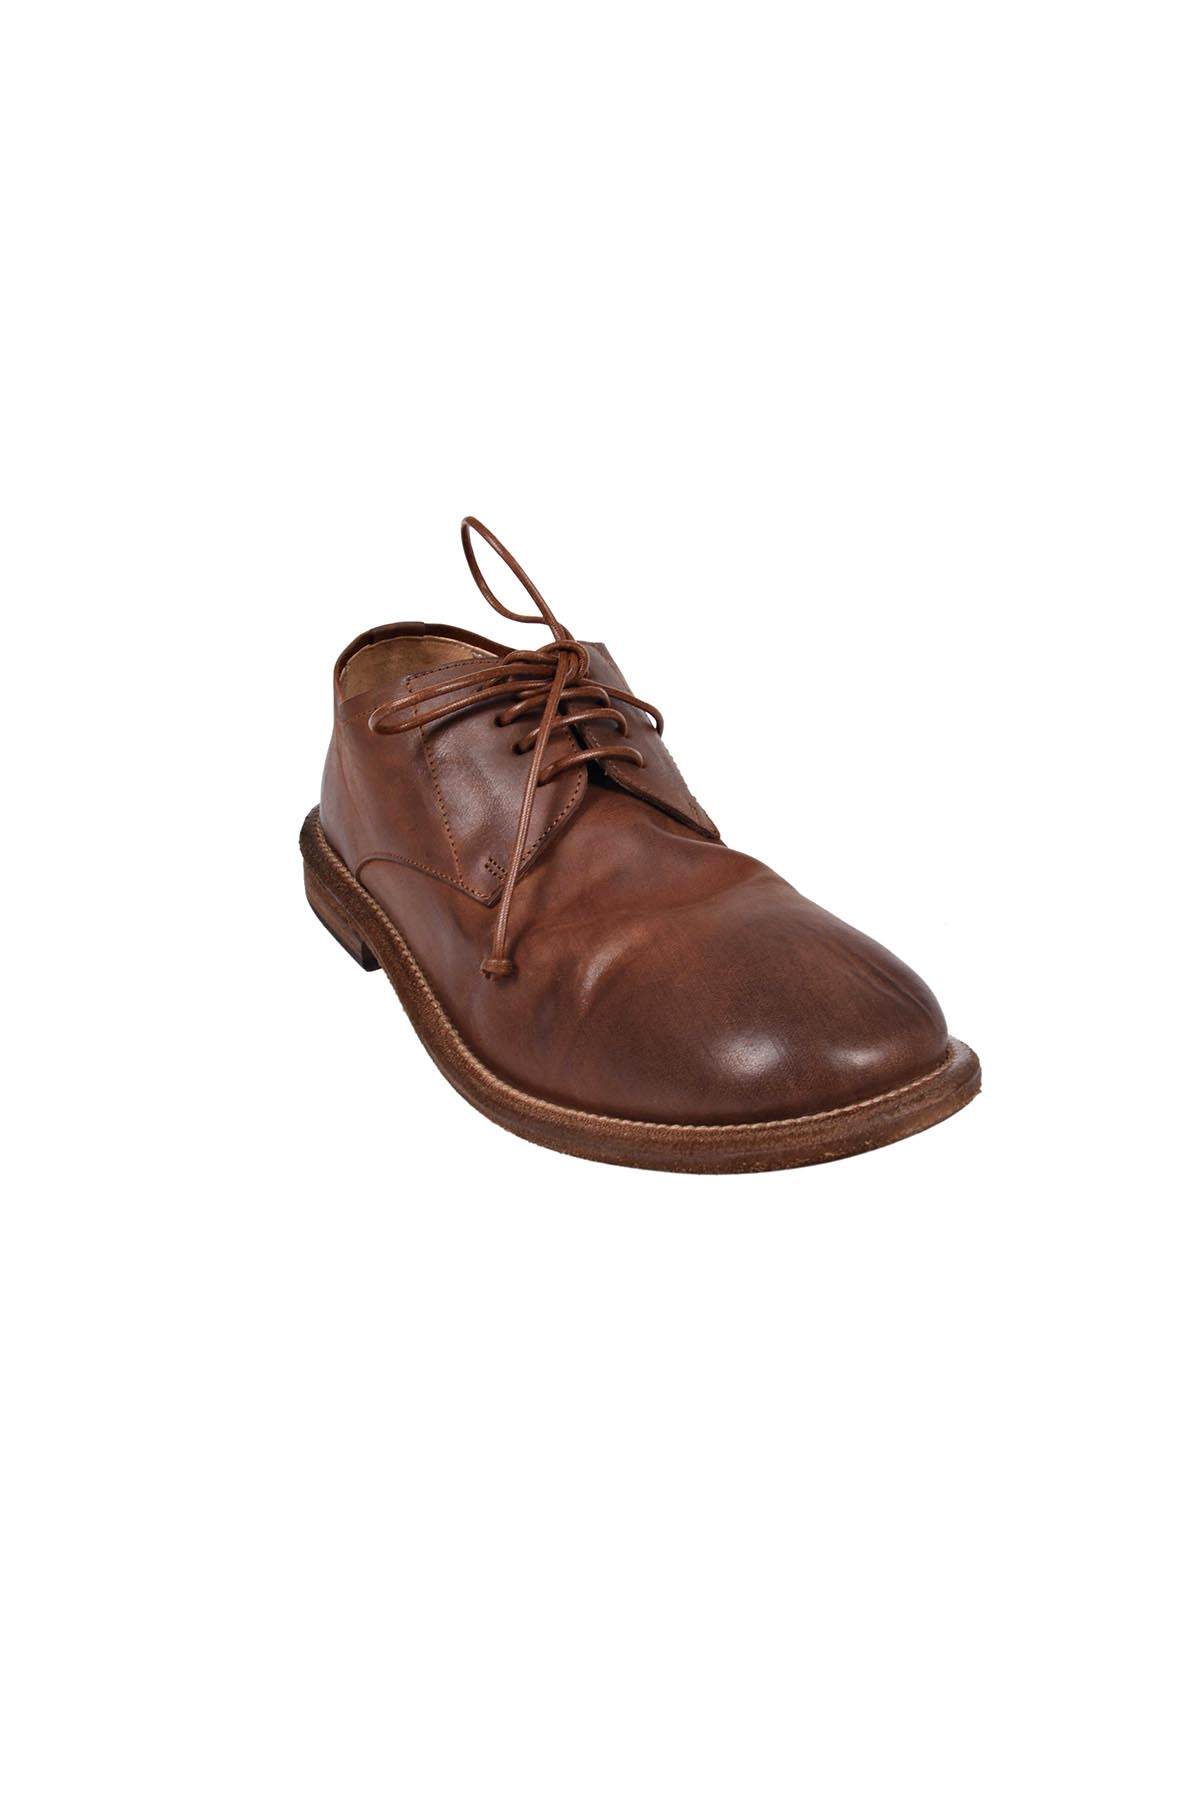 Cetriolo derby shoes - Brown Mars M9i5d7v